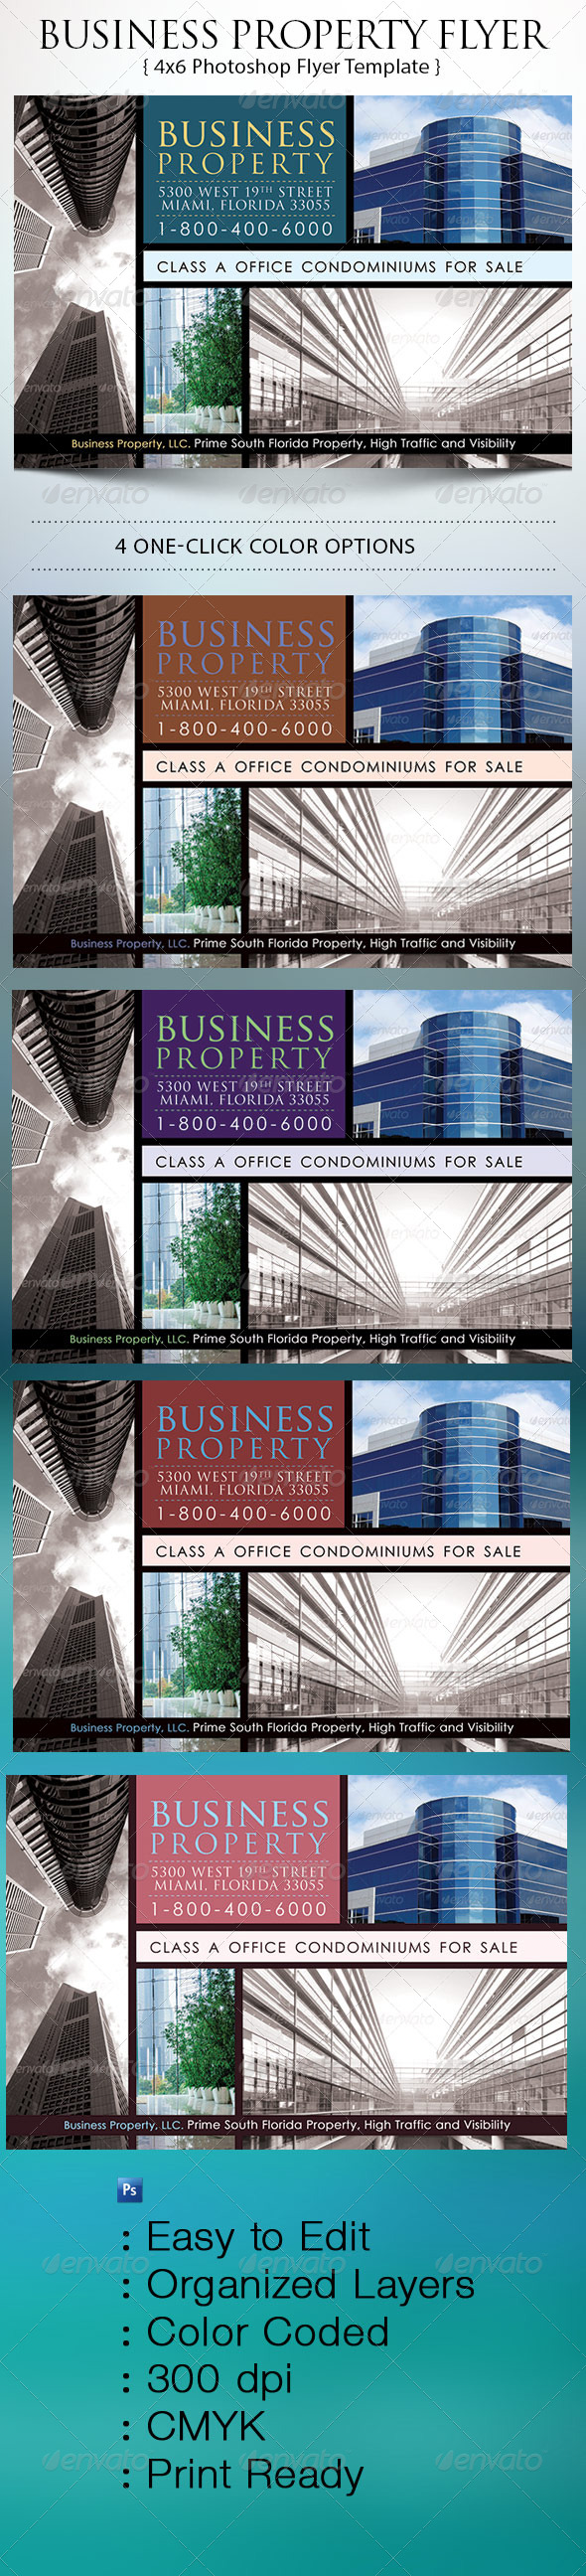 GraphicRiver Business Property Flyer 7255940